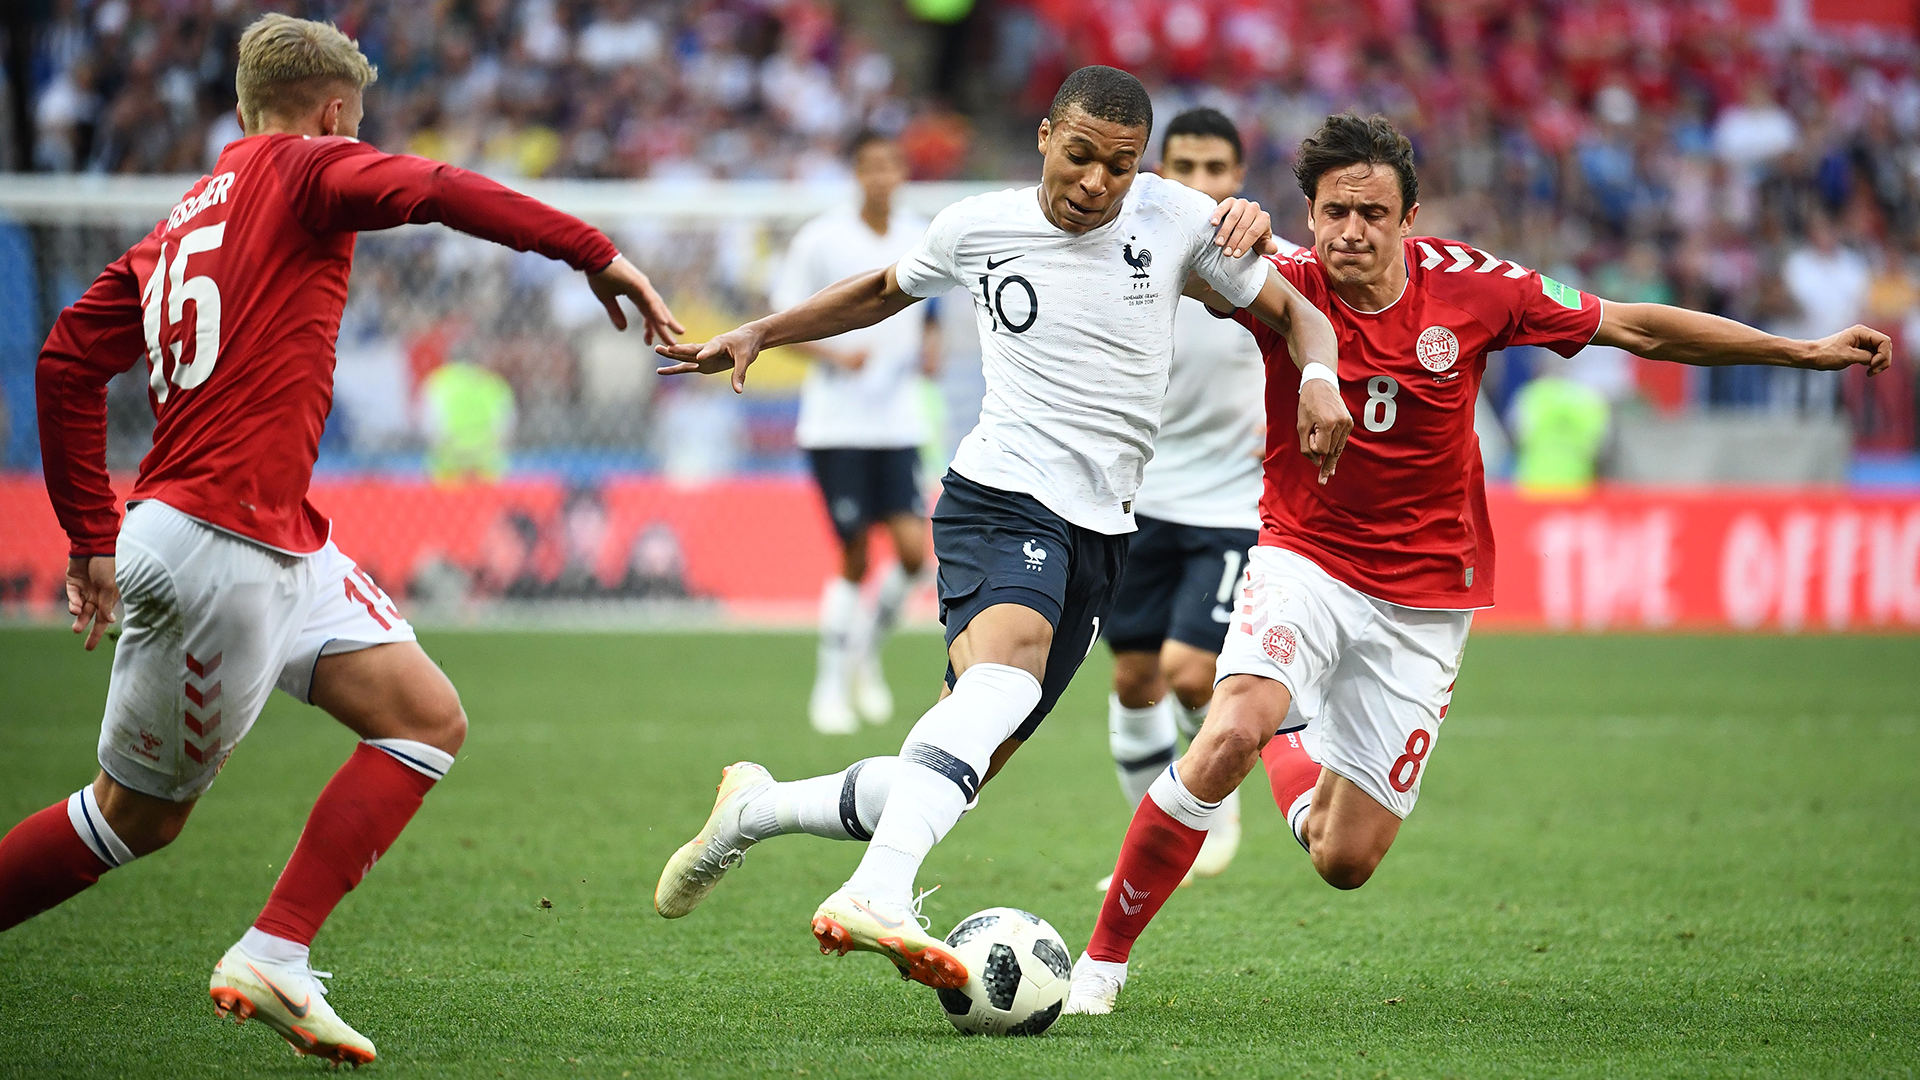 Argentina vs. France World Cup live stream info, channel